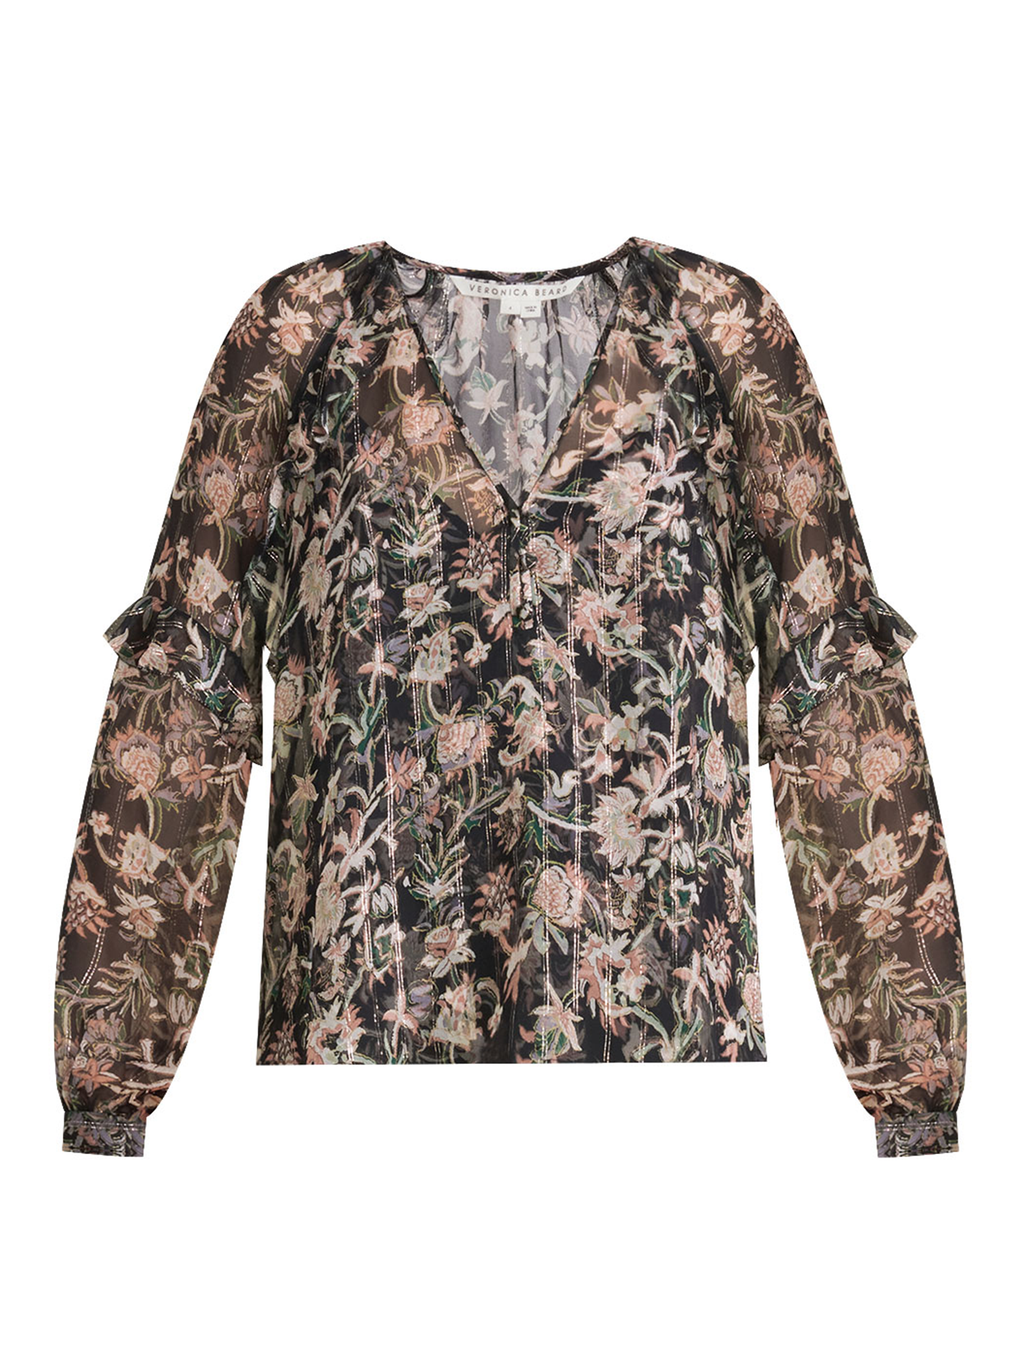 Veronica Beard Zanita Floral Top